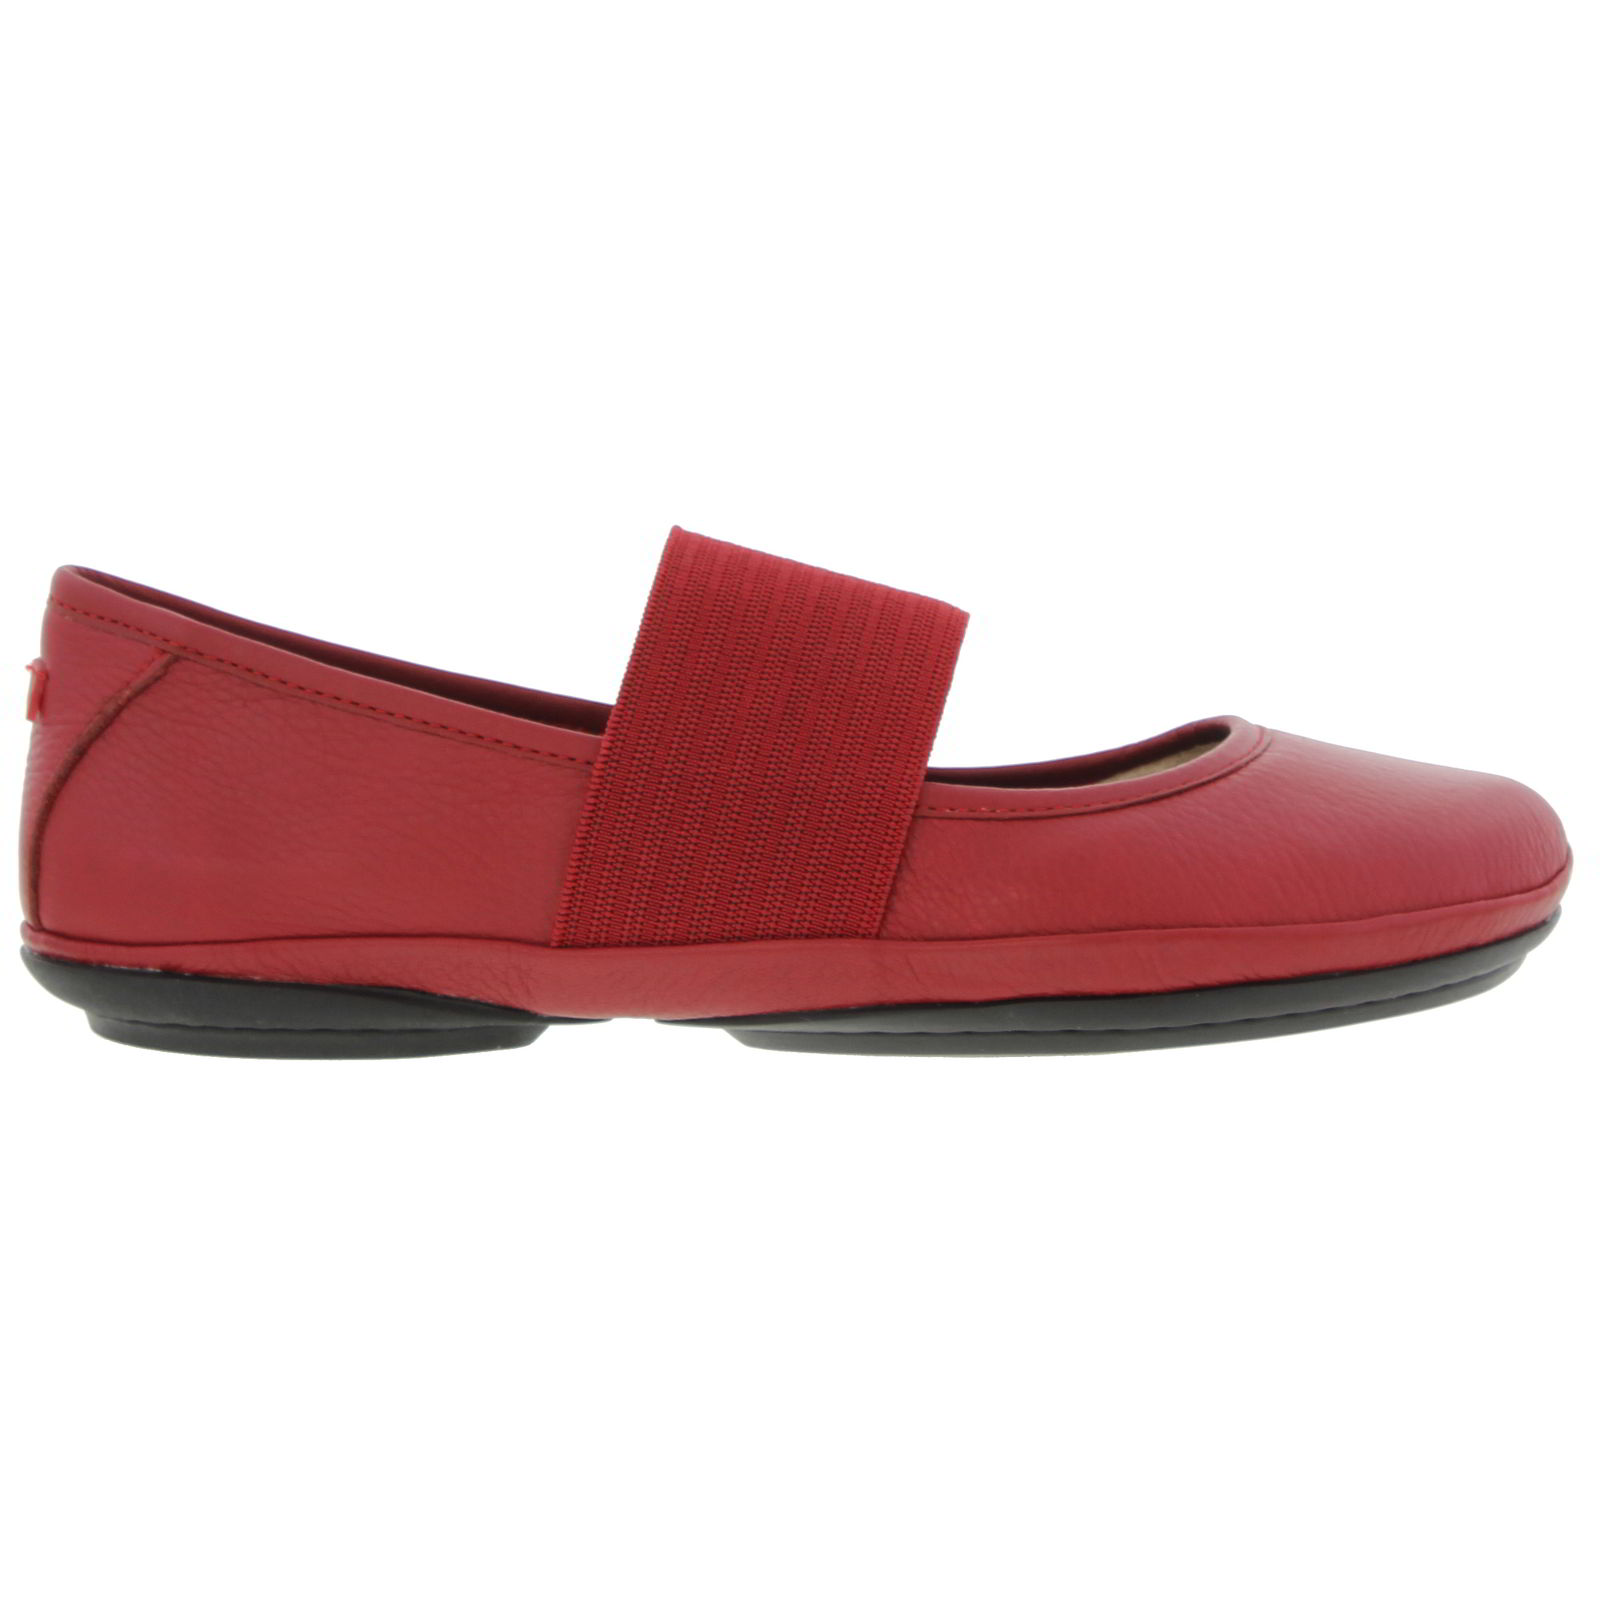 Camper Womens Right Nina 21595 Ballet Pumps Shoes - Red